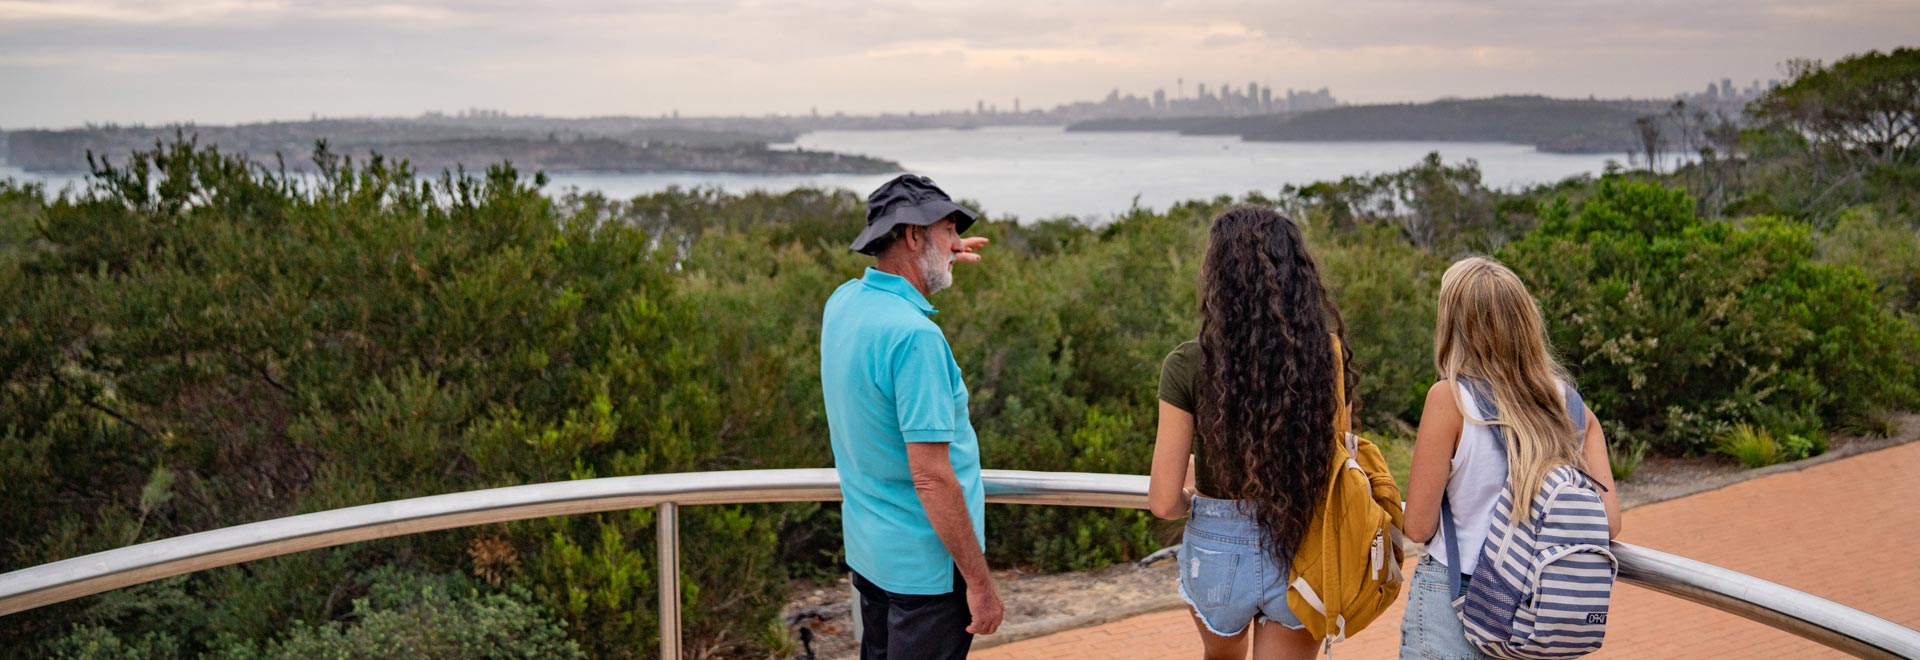 North Head Manly Tour Sydney Harbour View 1920X660